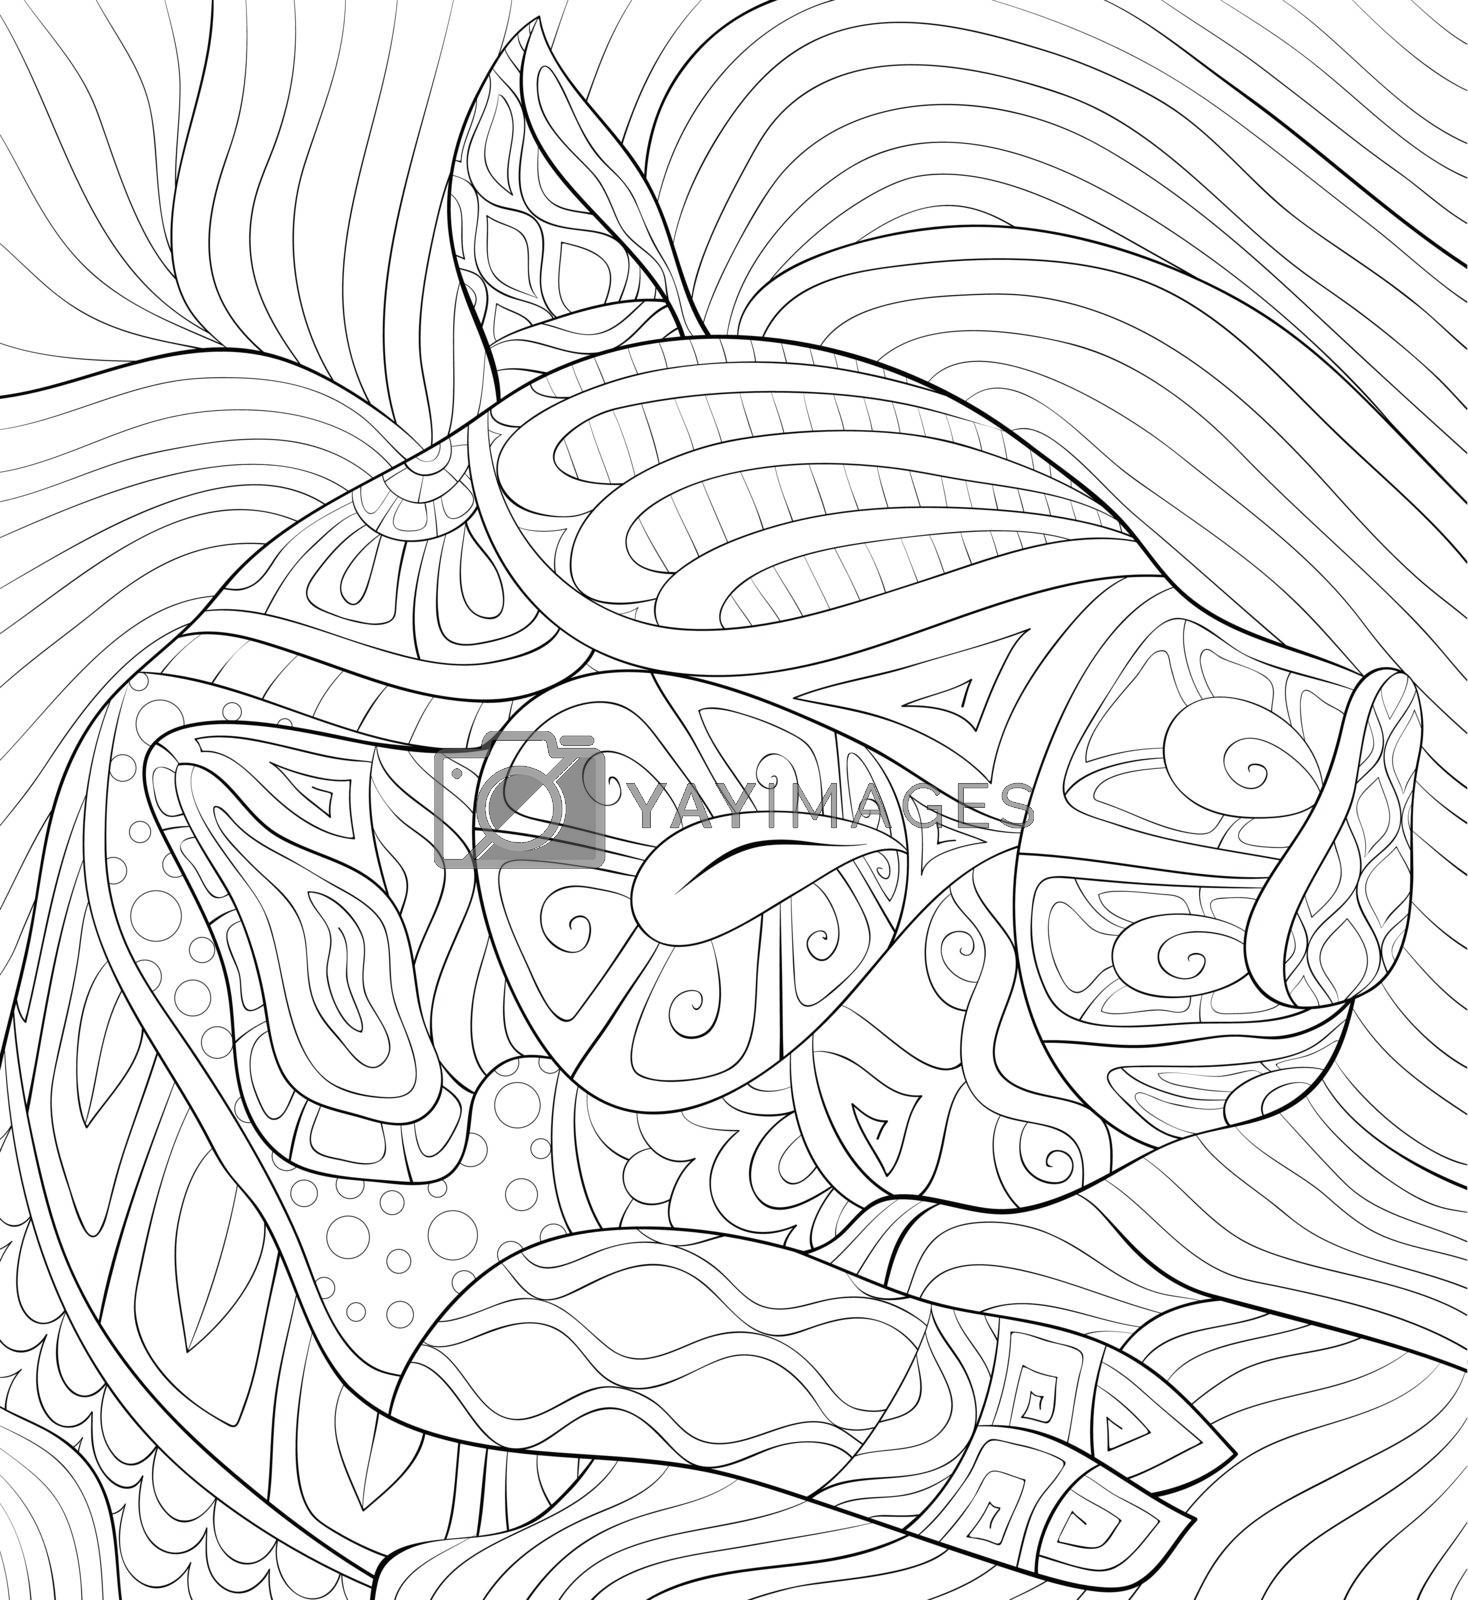 Adult coloring book,page a cute sleeping pig with ornaments imag by Nonuzza